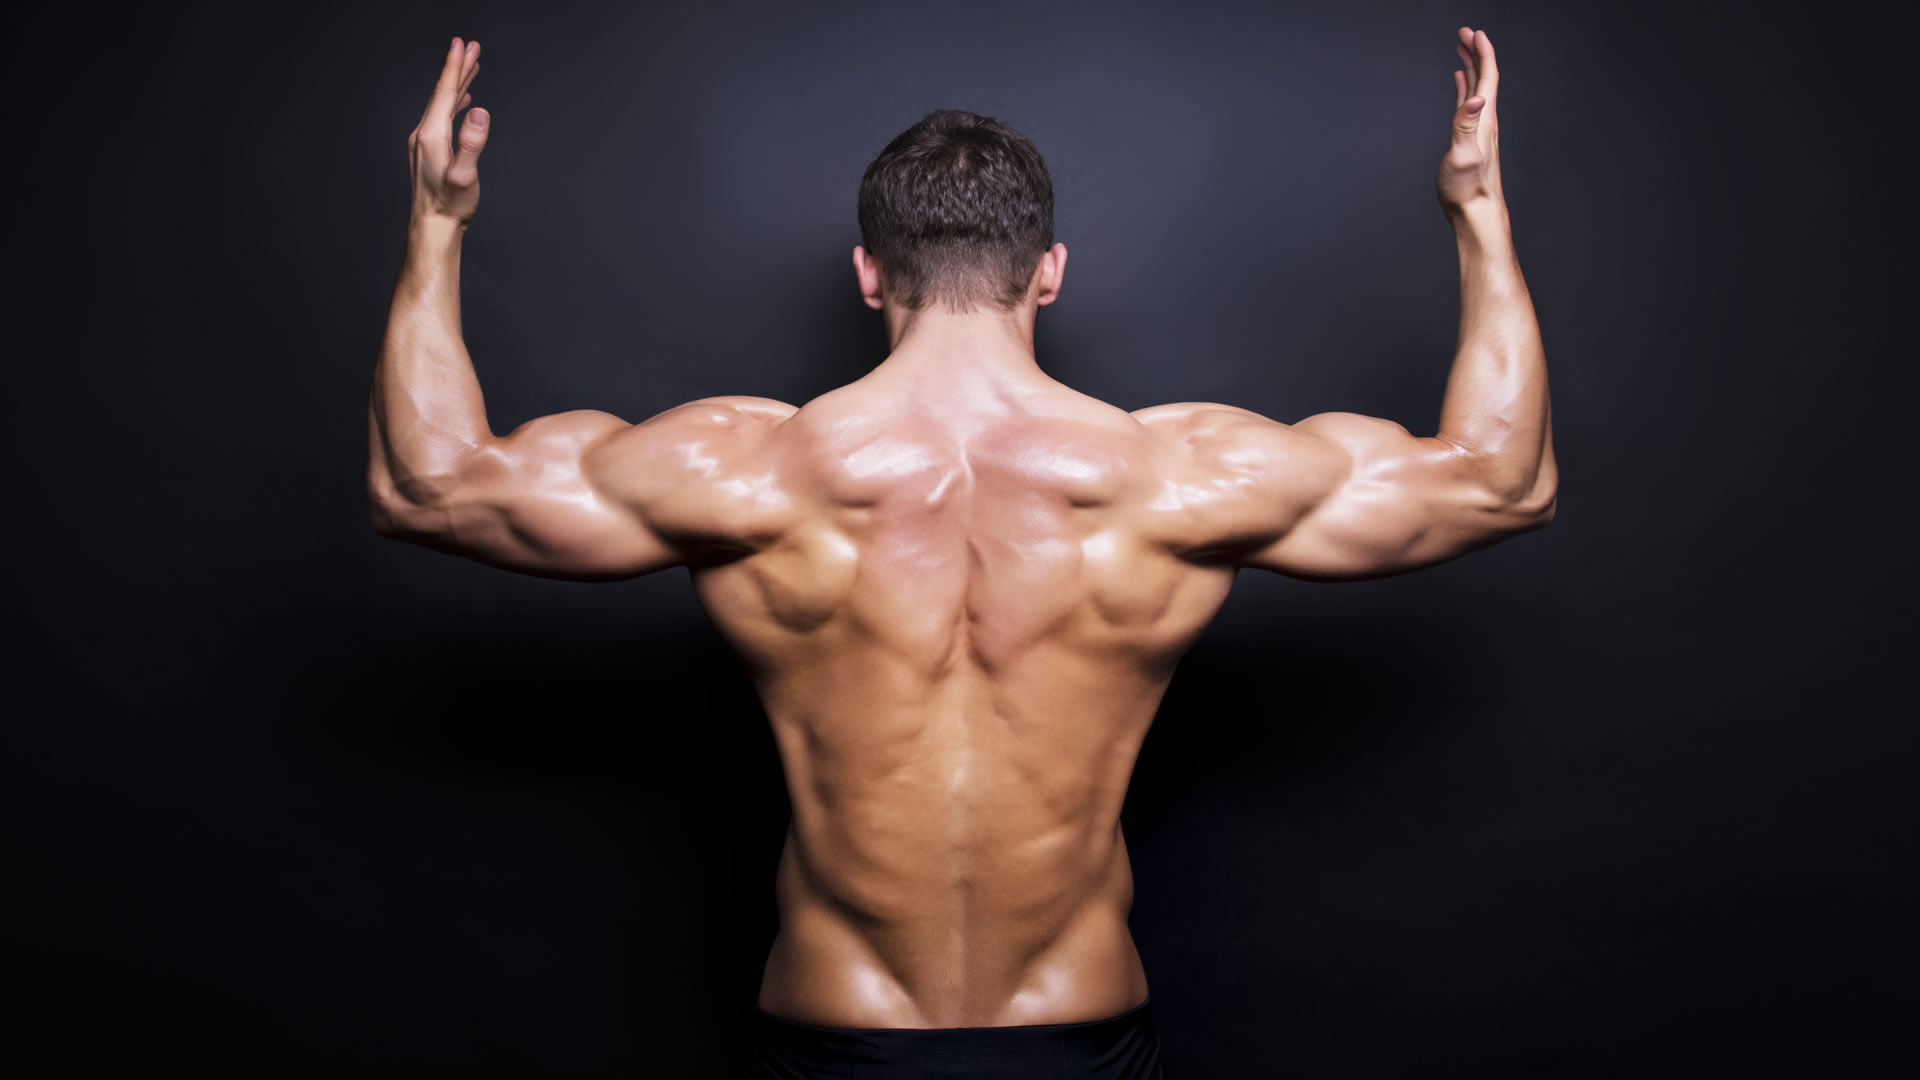 Musculos archivos - Fitness Guia - FITNESS-GUIA.ES